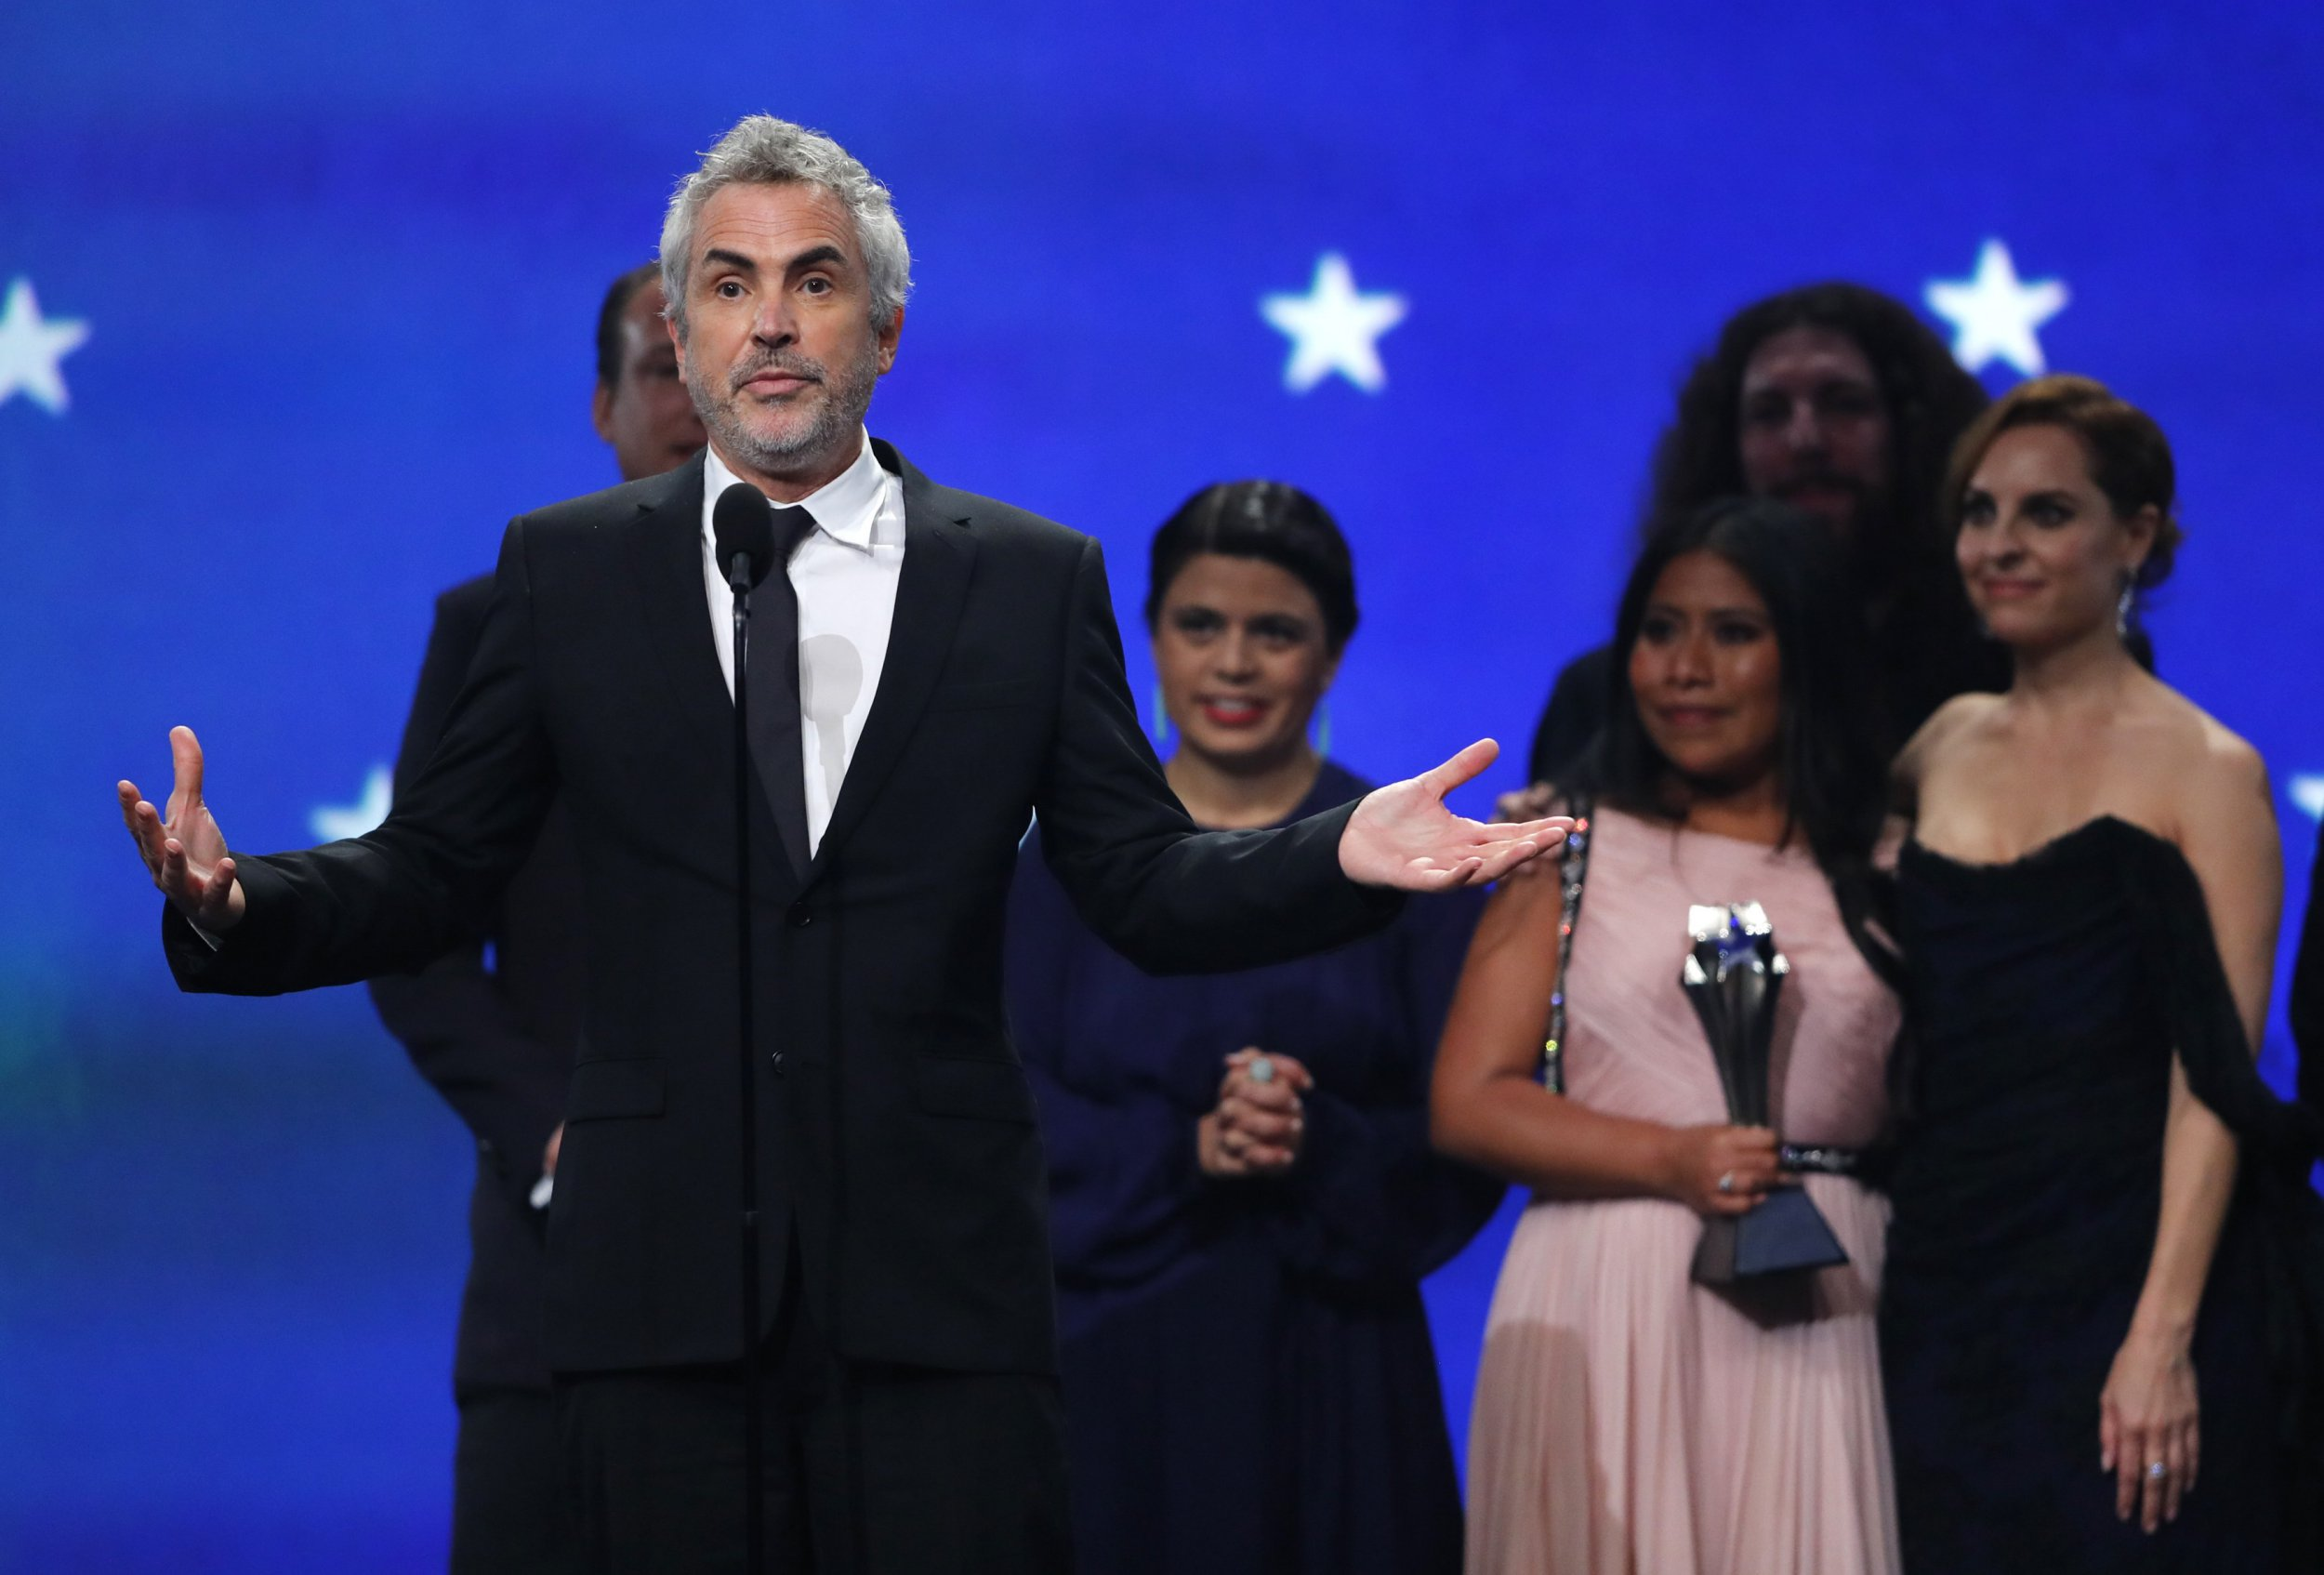 """24th Critics Choice Awards - Show - Santa Monica, California, U.S., January 13, 2019 - Director Alfonso Cuaron speaks after winning the award for Best Picture for """"ROMA."""" REUTERS/Mike Blake"""